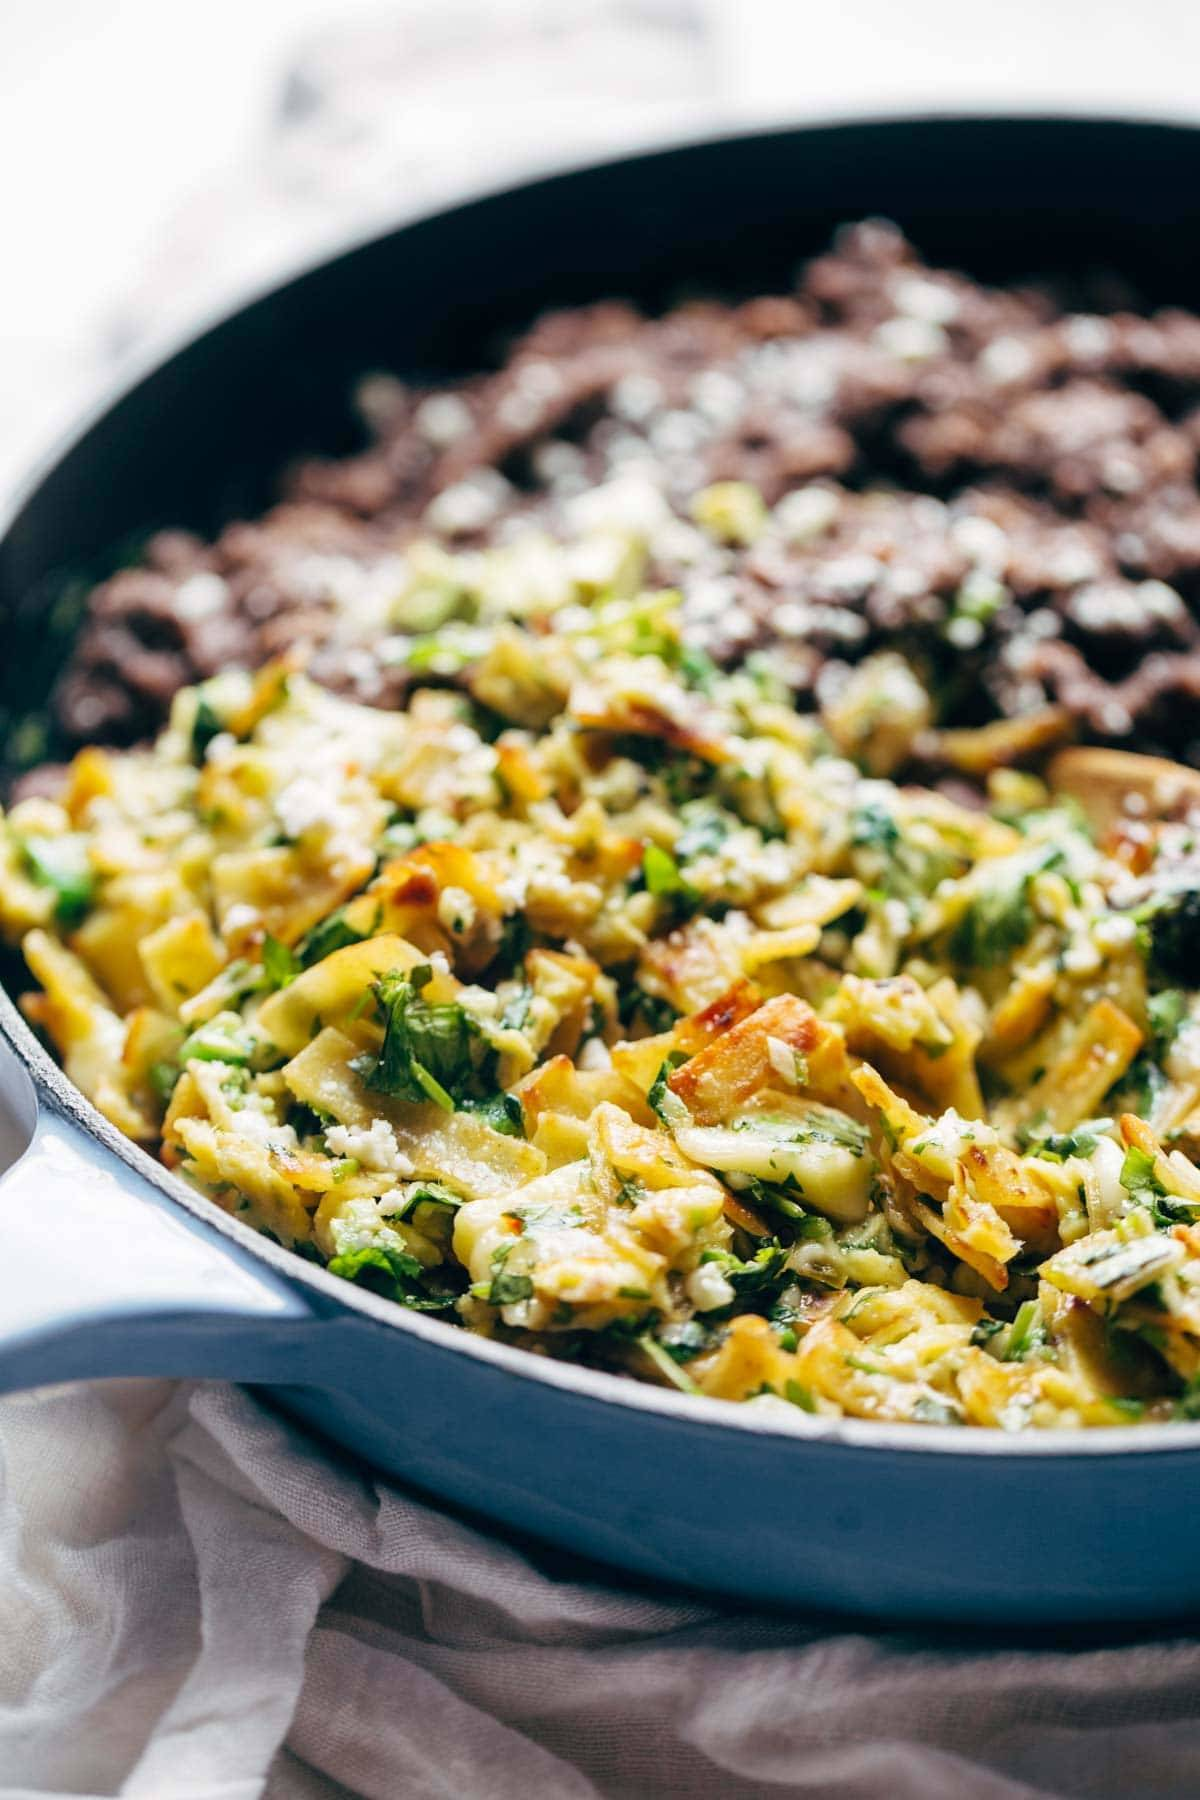 Migas - eggs scrambled with crispy tortillas, garlic, jalapeño, and melted cheese served with black beans and avocado. Quick, easy, and SO DELICIOUS. Breakfast, lunch, dinner, or brunch!   pinchofyum.com